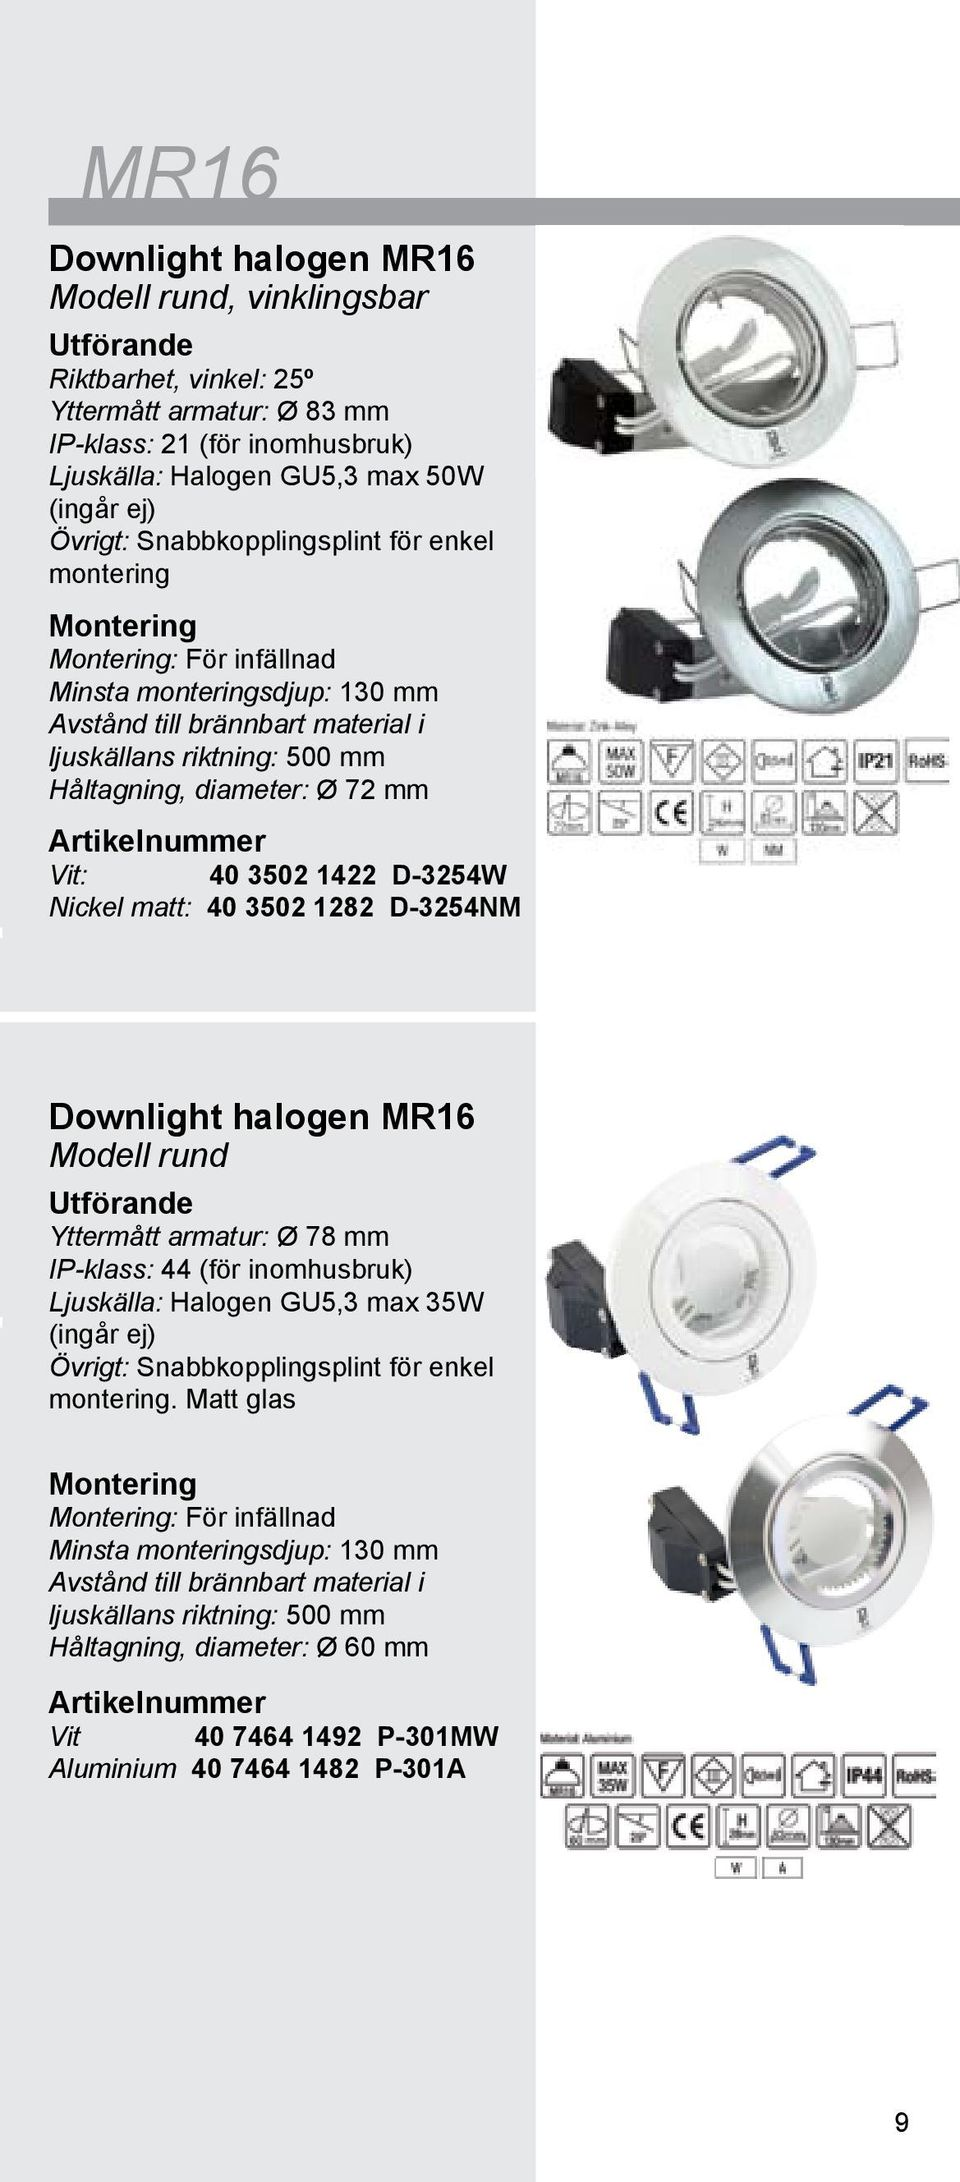 D-3254W Nickel matt: 40 3502 1282 D-3254NM Downlight halogen MR16 Modell rund Yttermått armatur: Ø 78 mm IP-klass: 44 (för inomhusbruk) Ljuskälla: Halogen GU5,3 max 35W (ingår ej) Övrigt: